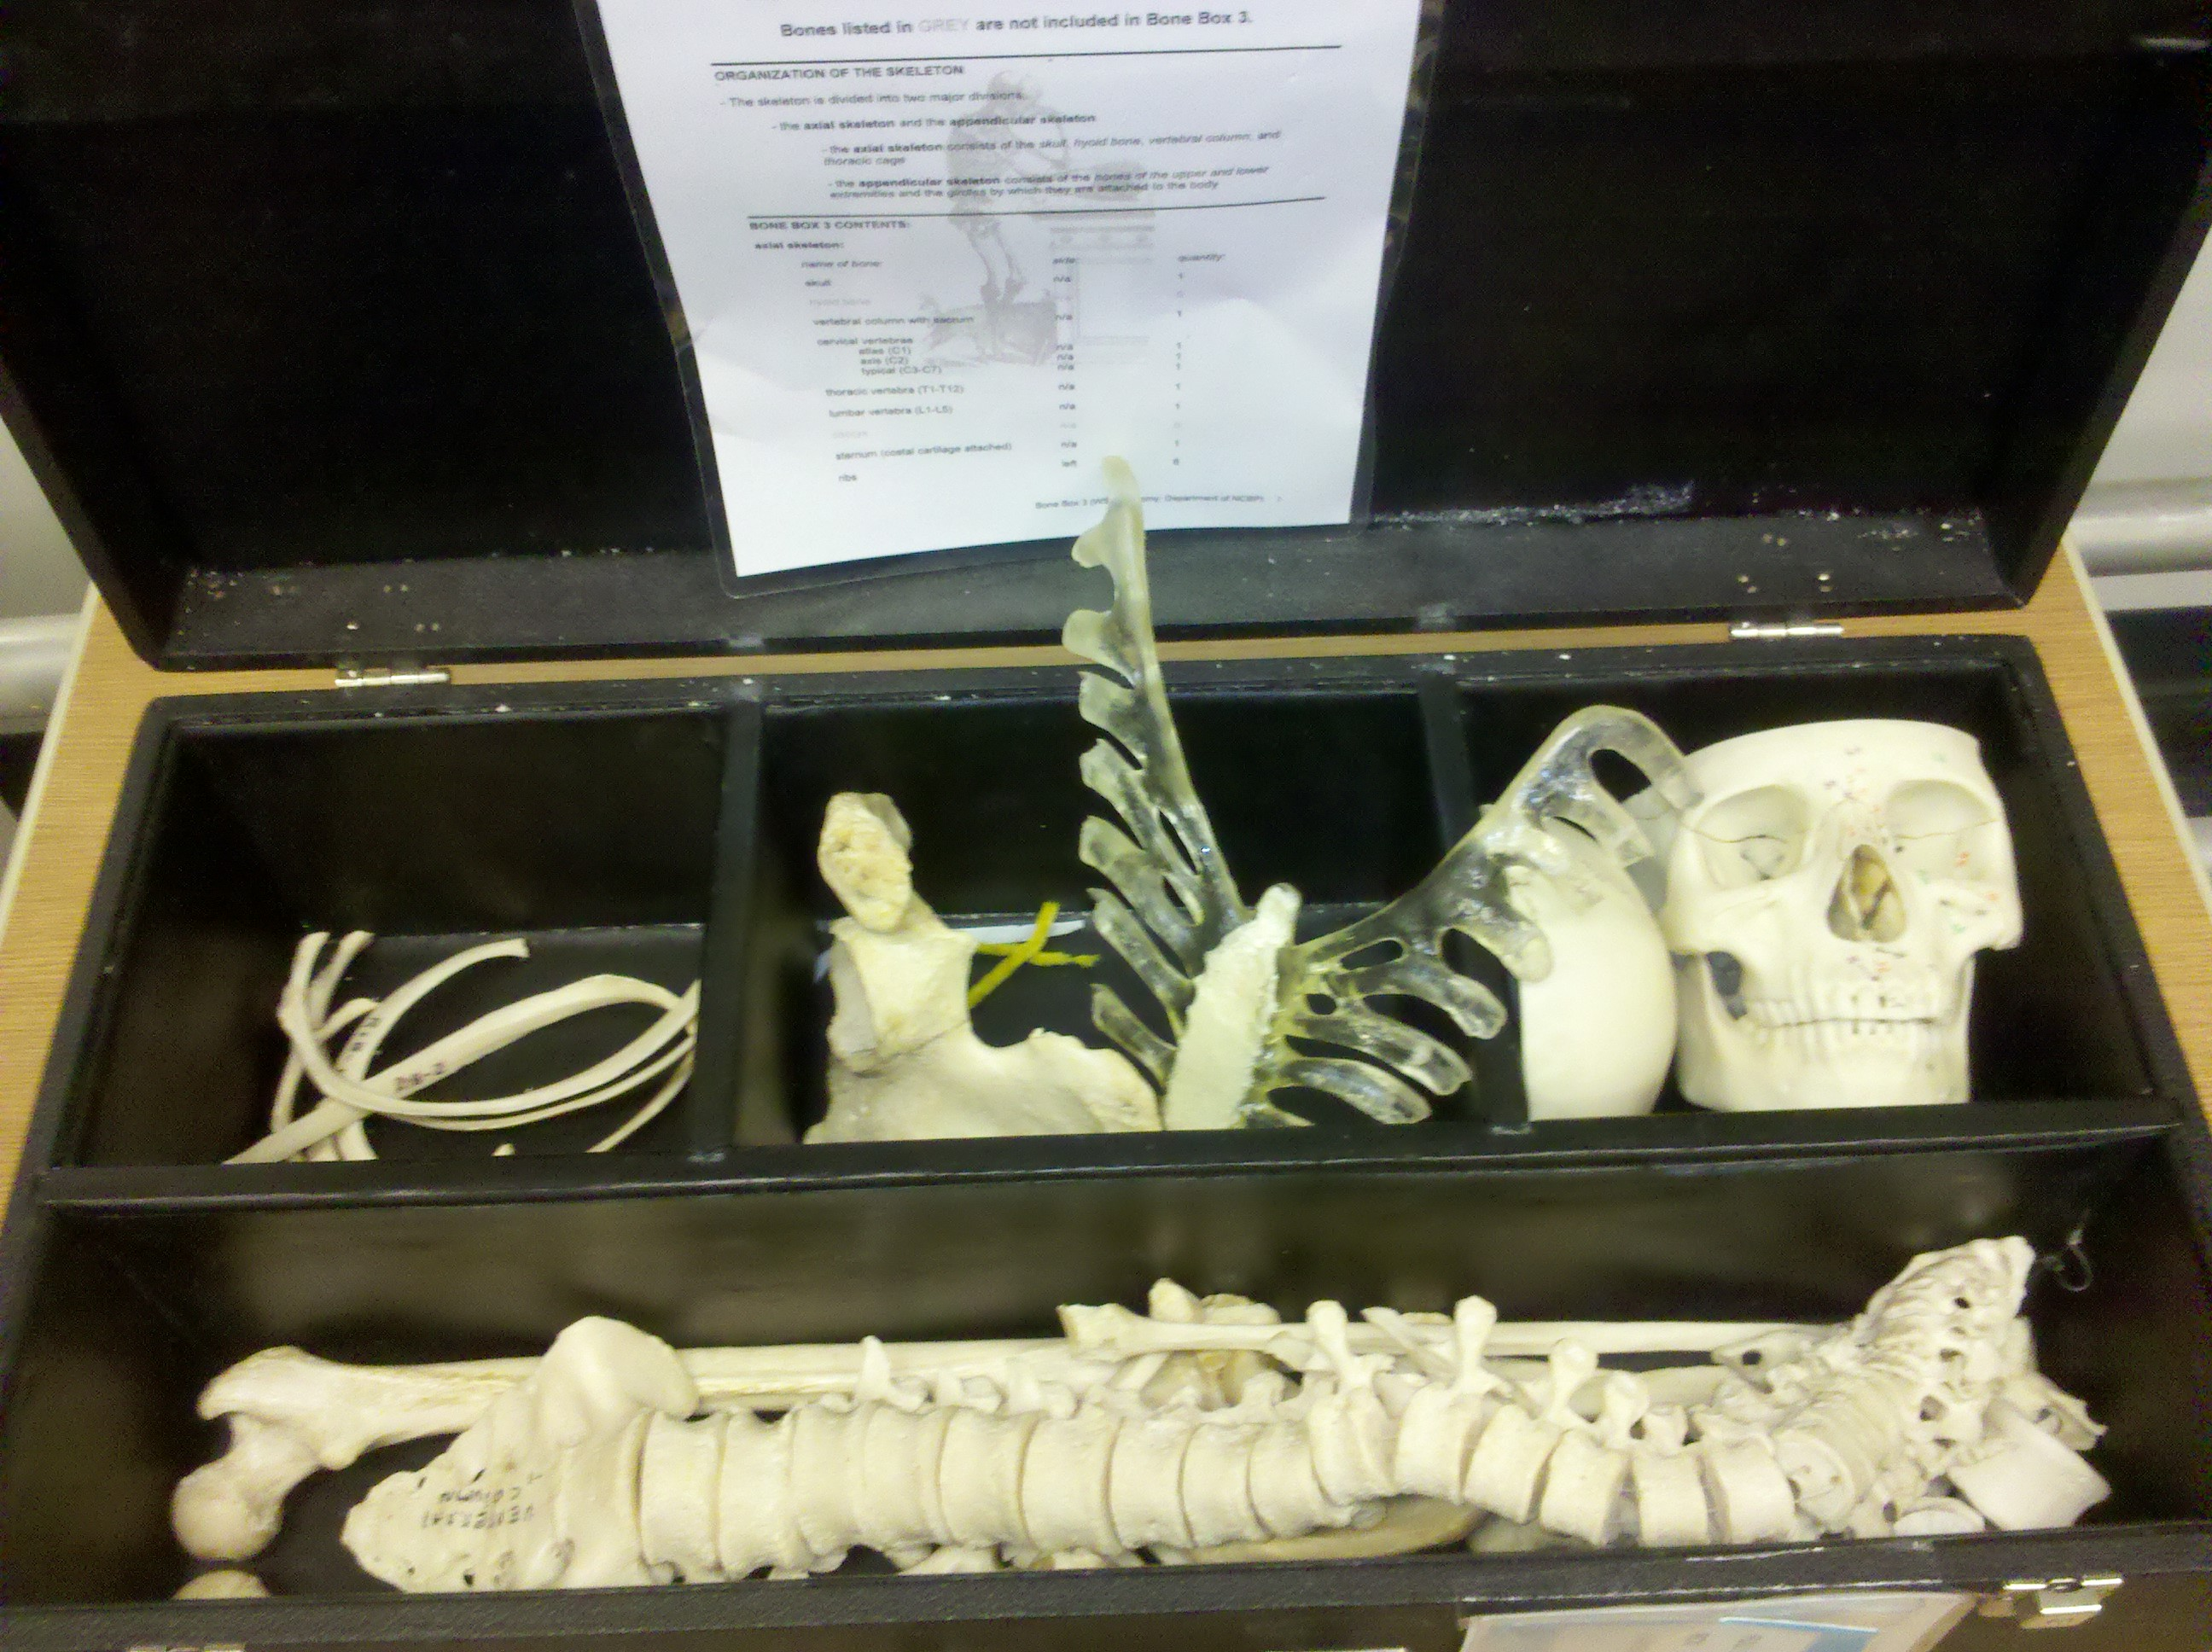 Image of bone boxes held at the circulation desk for student use